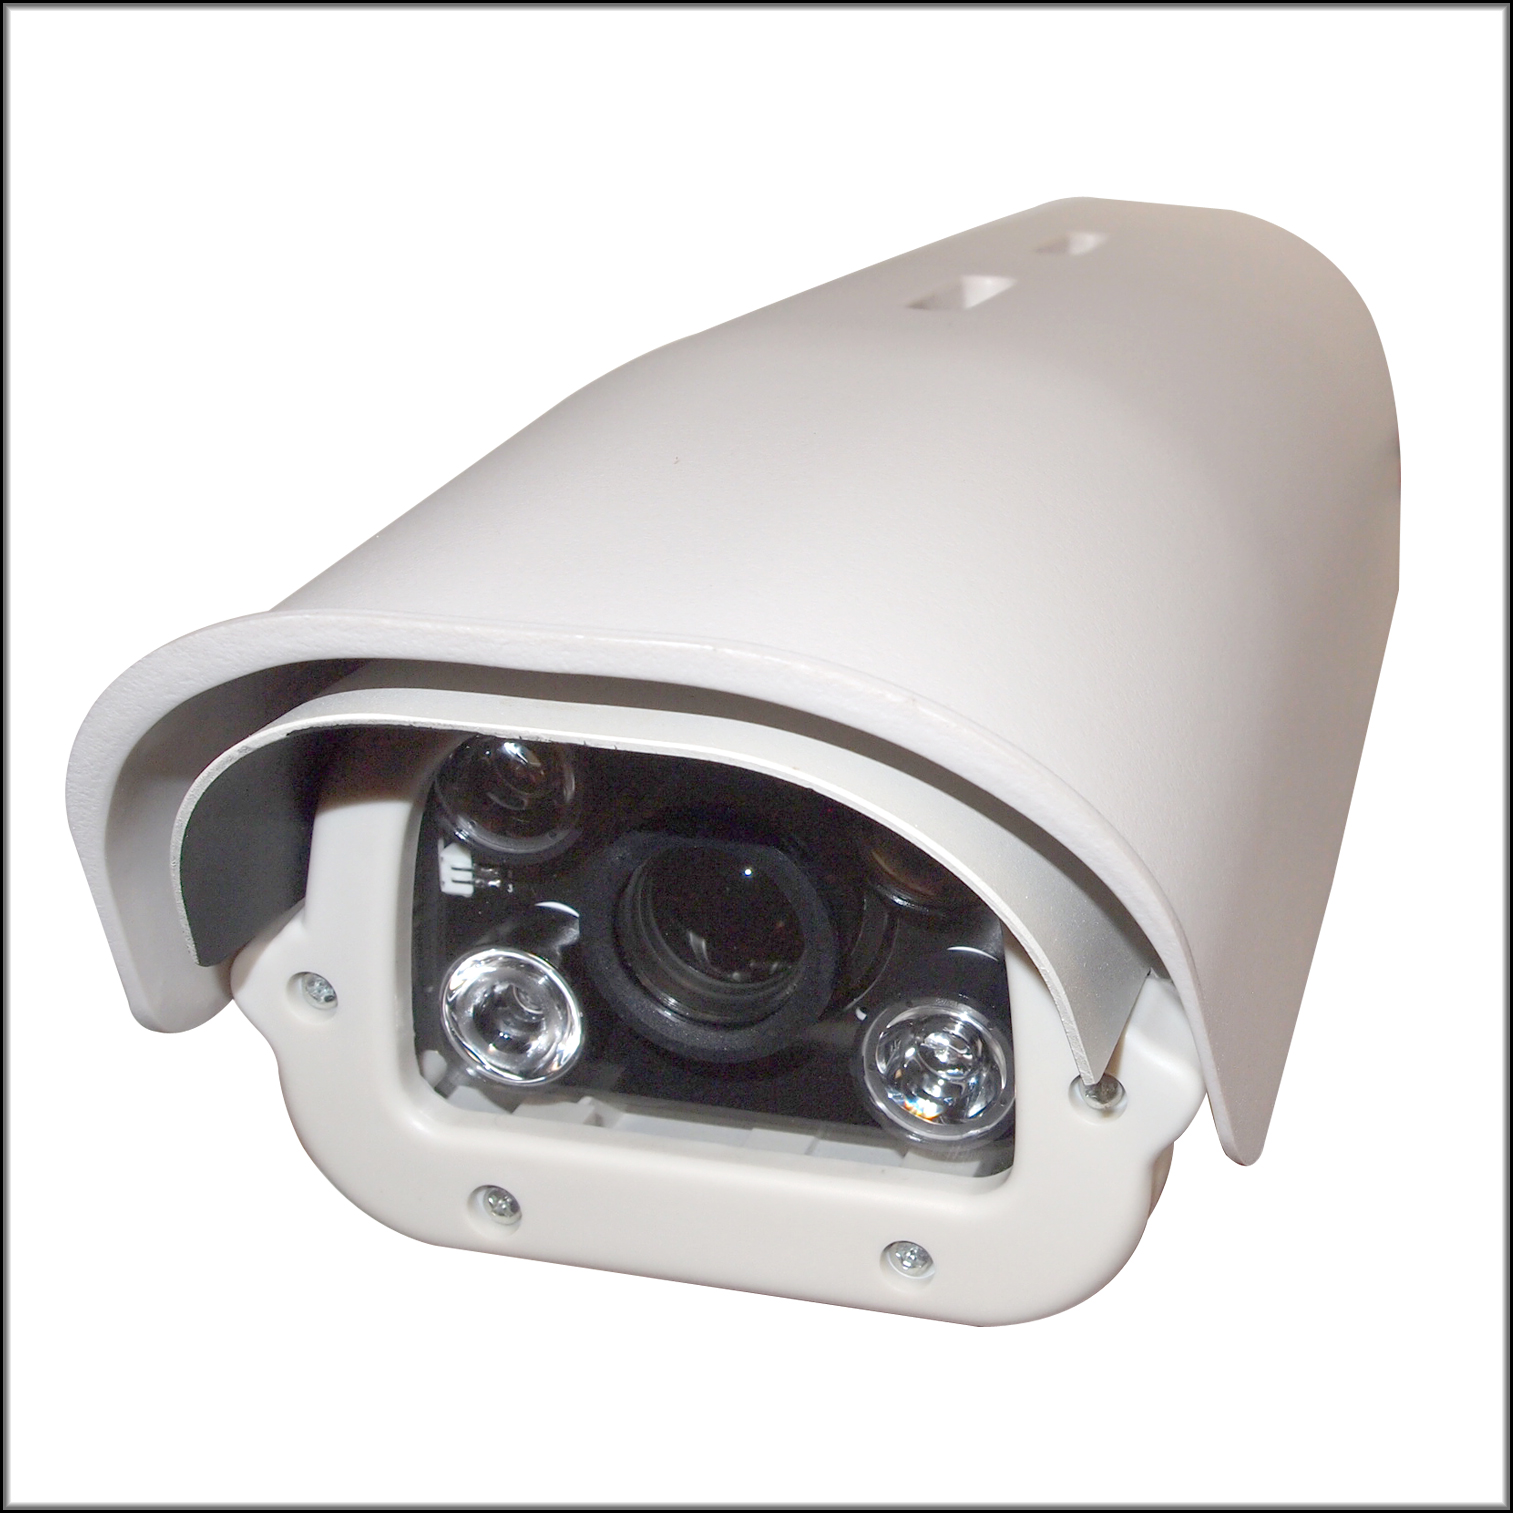 License Plate Recognition Cameras